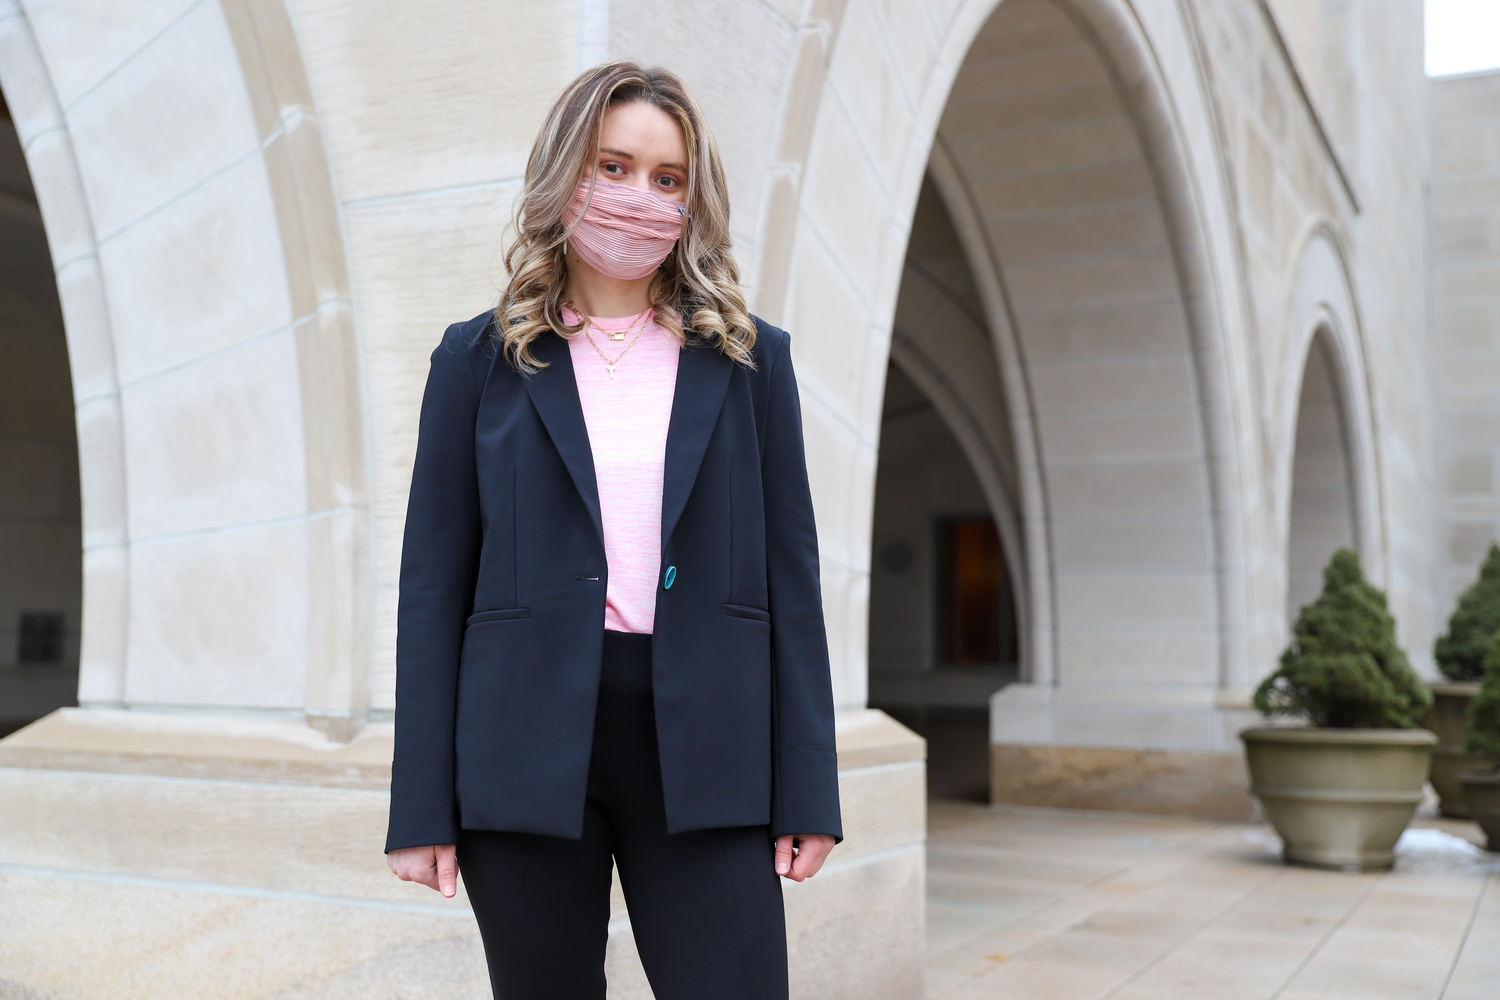 Second-year Law student Logan E. Brown created her own professional pantsuit company after she experienced the difficulty of finding comfortable professional clothing for interviews.